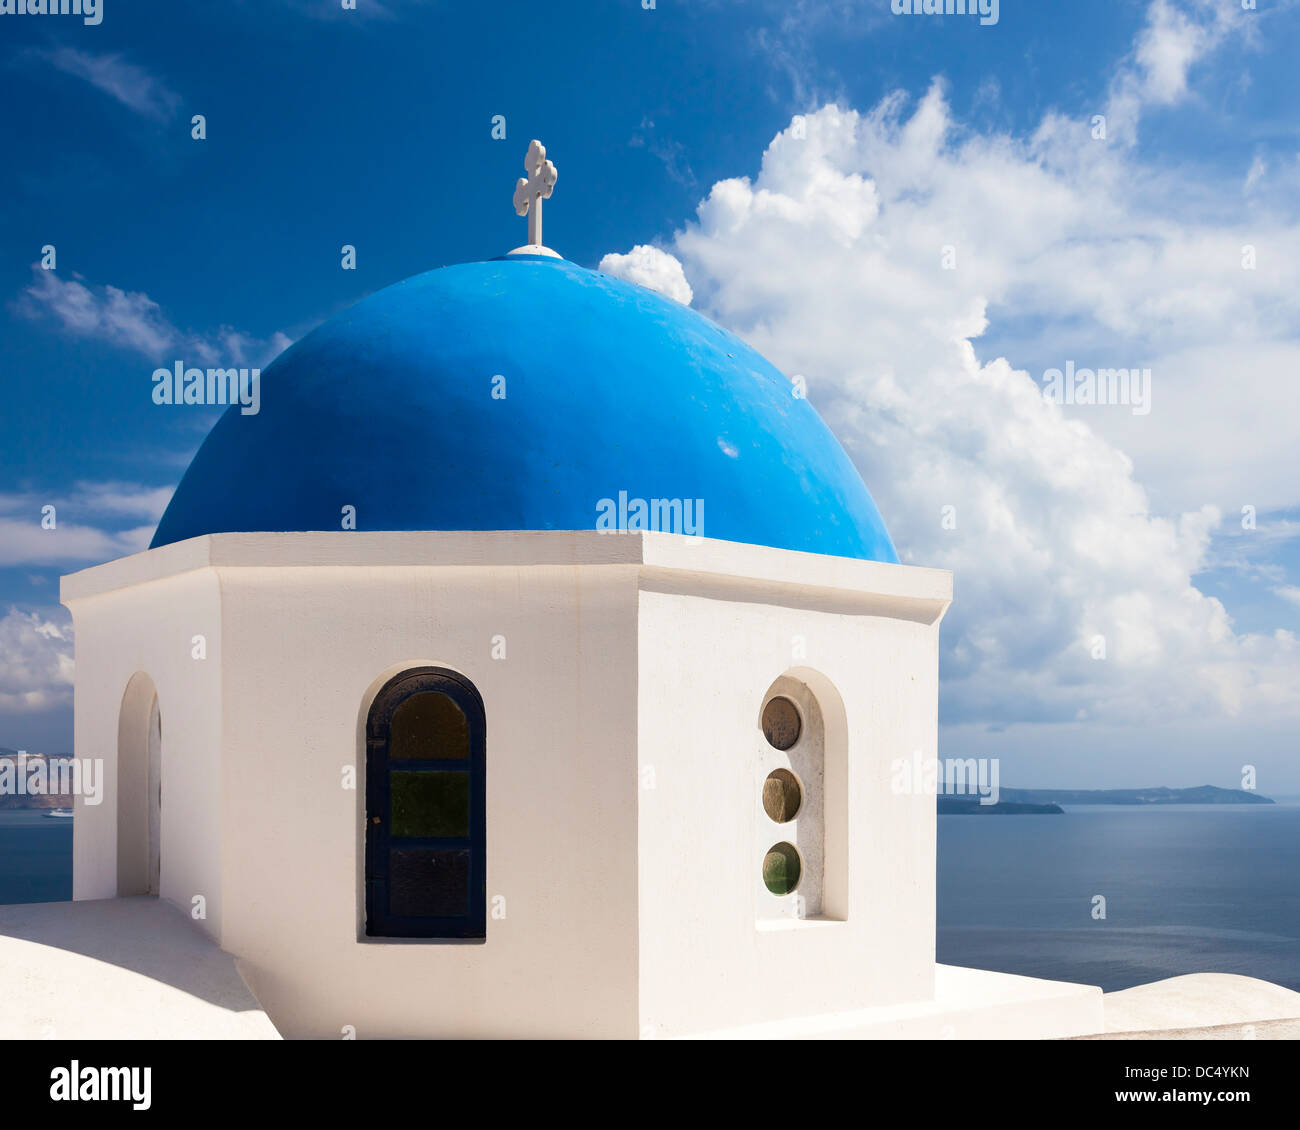 Beautiful blue domed church overlooking the Aegean Sea at Oia Santorini Greece Europe - Stock Image